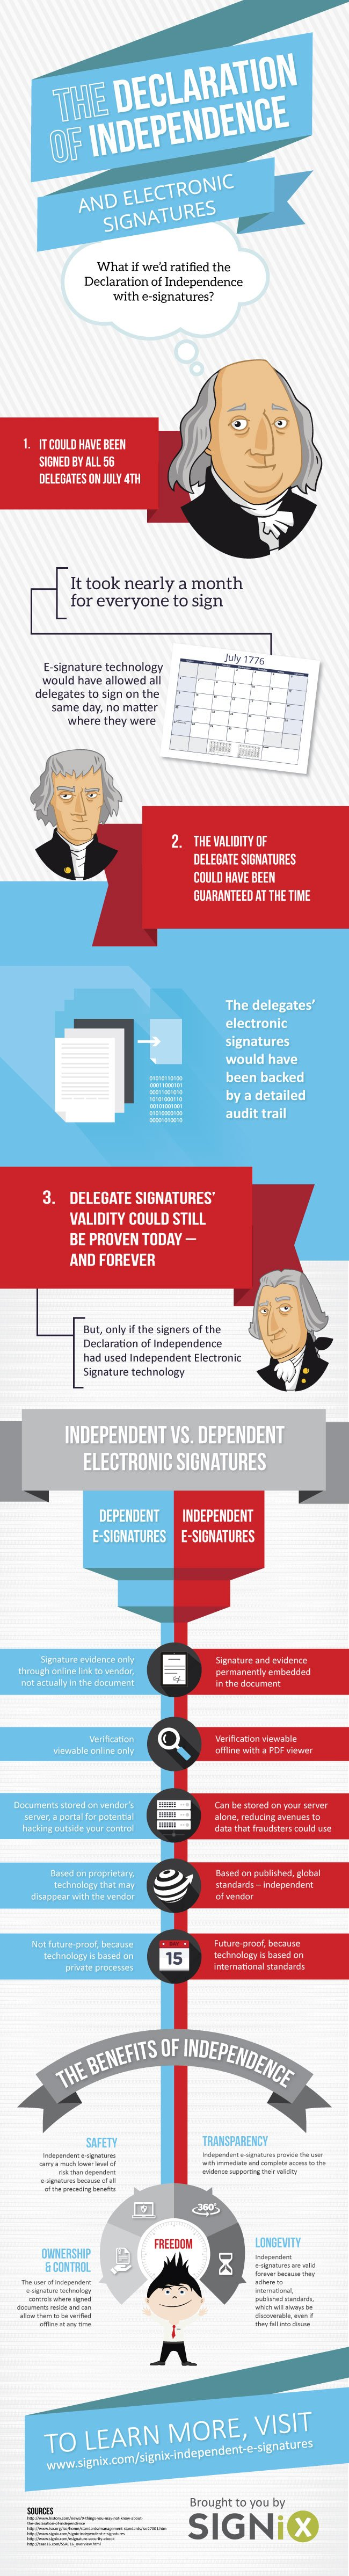 E-Signatures and The Declaration of Independence